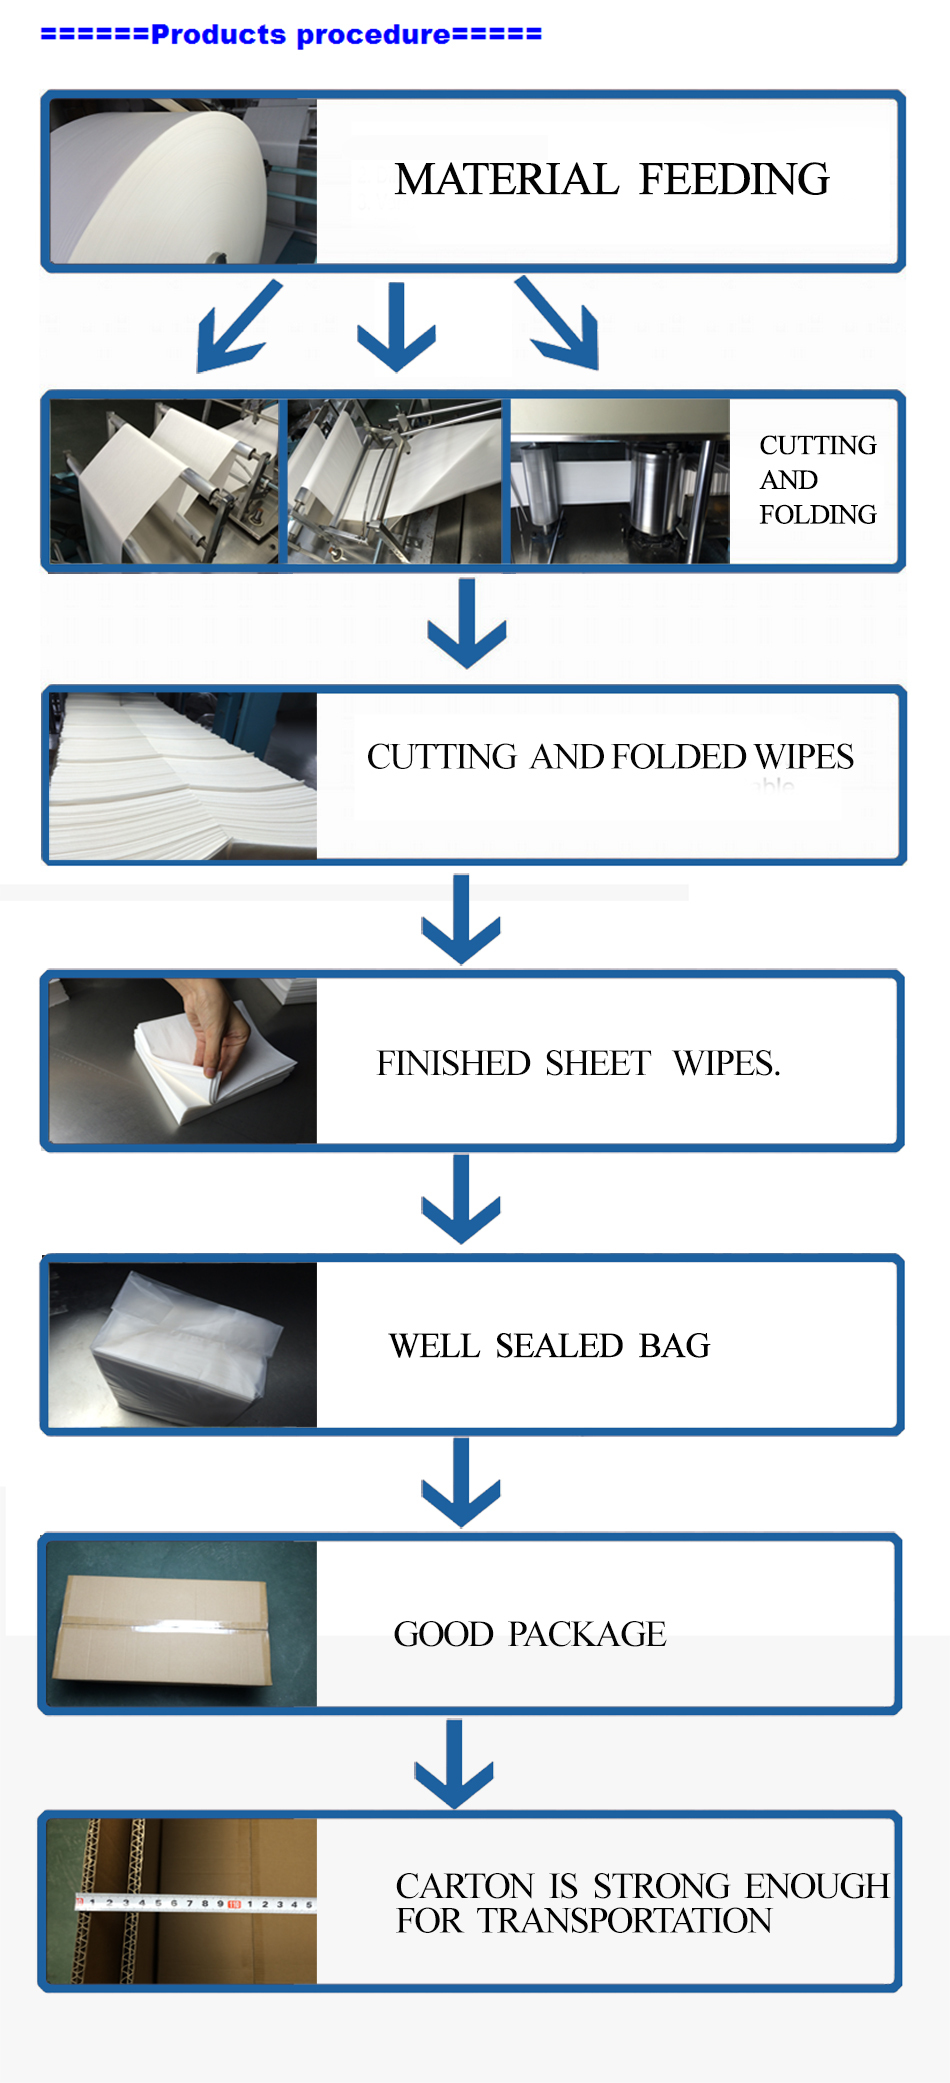 soft spunlaced nonwoven patient wipes for healthcare cleaning